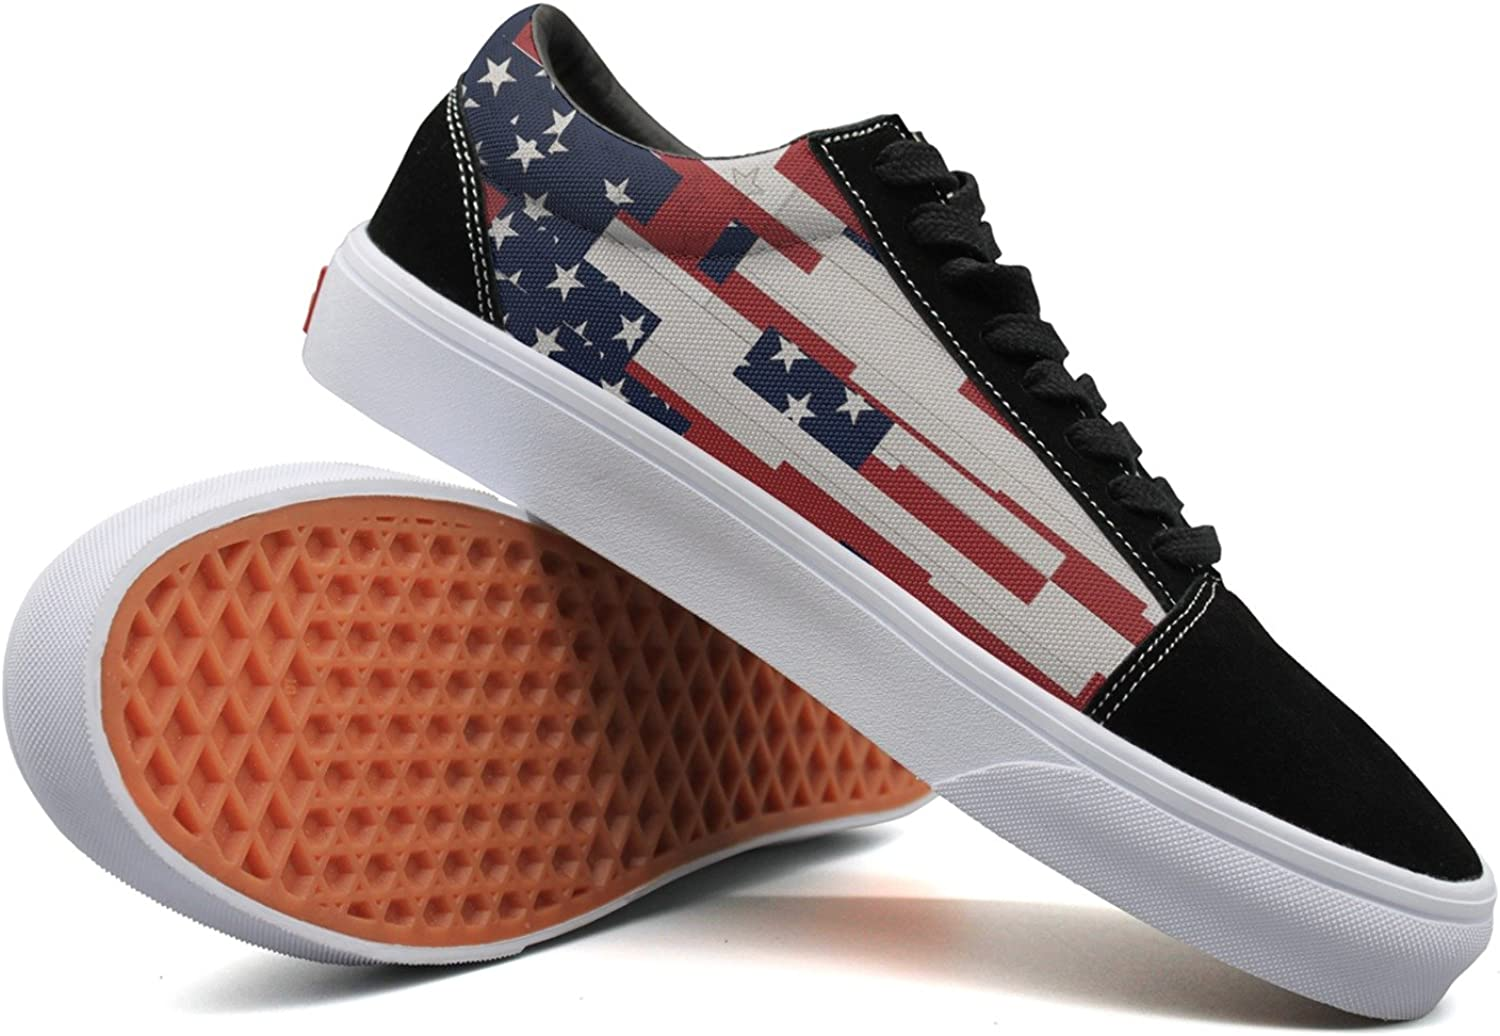 SERHJOI Keppel Teerd Women's USA Flag Art Casual Flat Canvas shoes Low-top Lace-up Sneakers